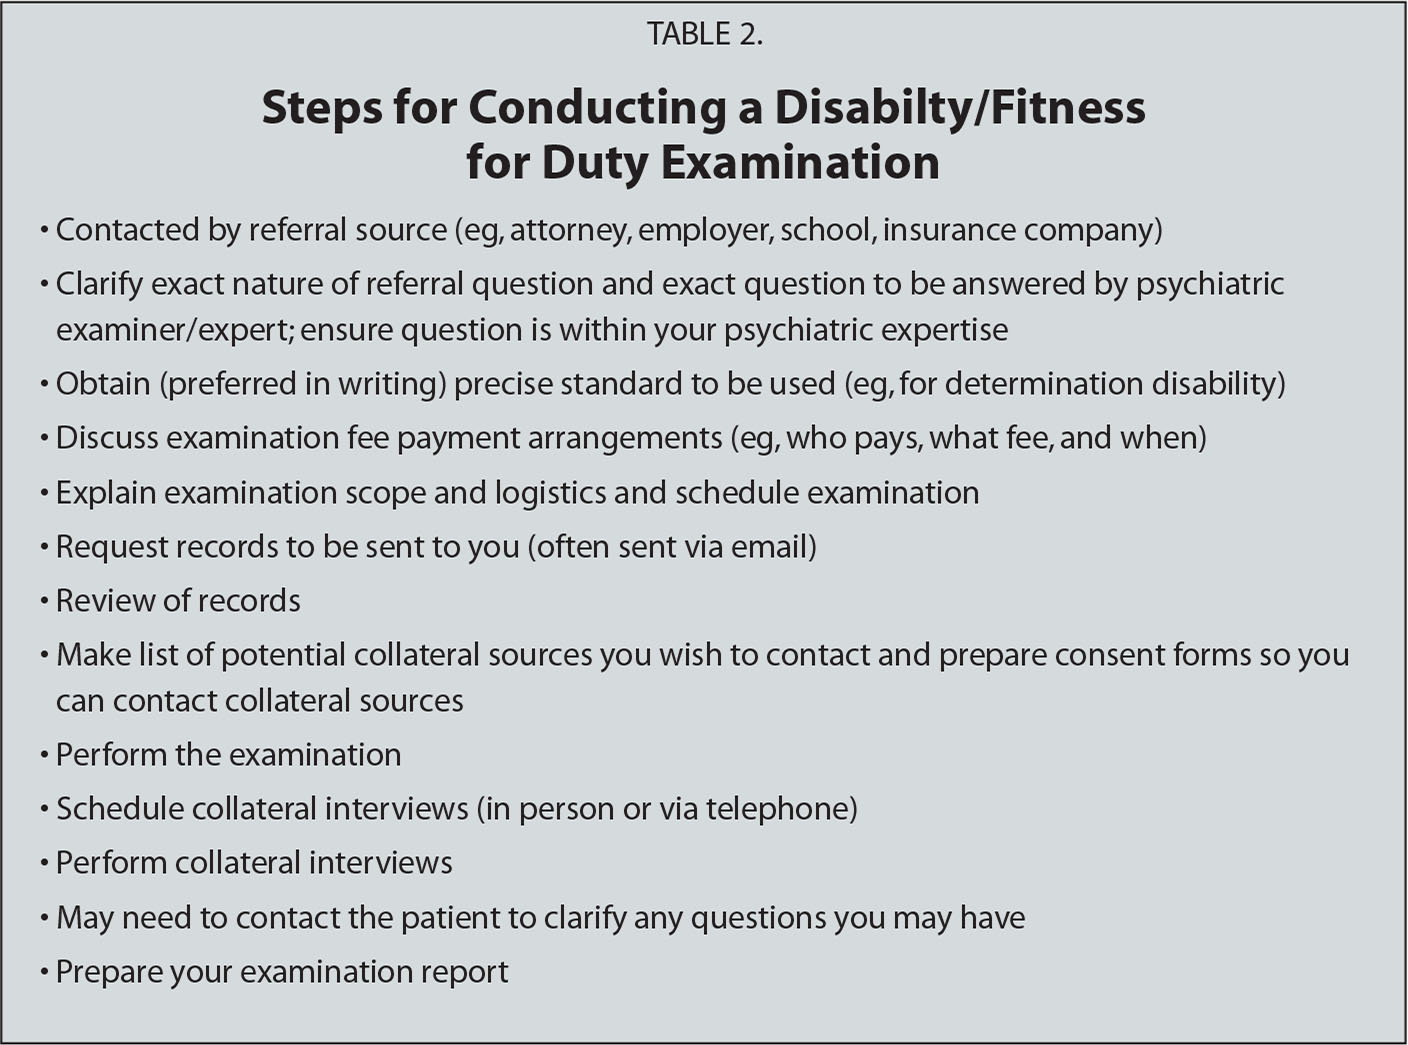 Steps for Conducting a Disabilty/Fitness for Duty Examination